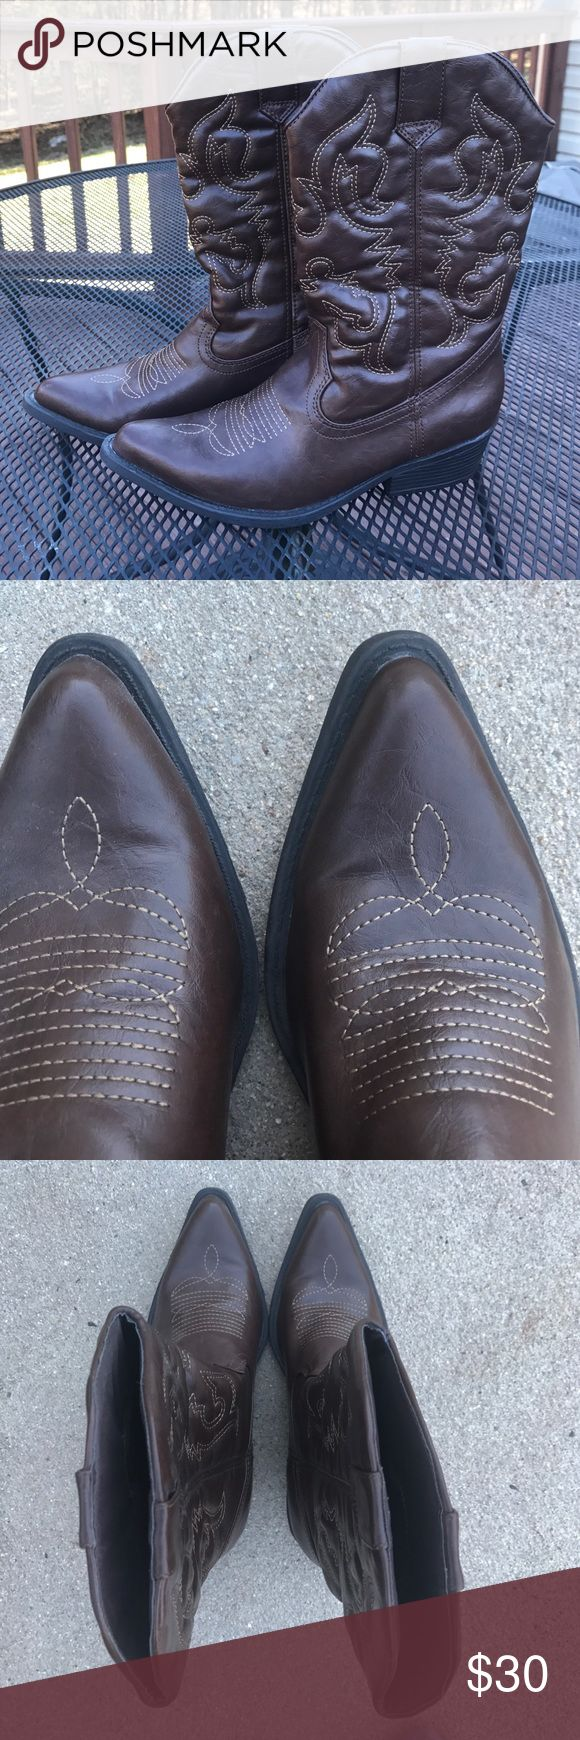 """Madden Girl brown western boot Super cute pointed toe Madden Girl brown western boot, women's size 7.5. Pull on boot with a slightly padded insole. Great condition. Worn once as part of a bridesmaid ensemble for a """"country"""" themed wedding but just not my personal style to keep. Few very small scuff marks located on back left heel of boot as pictured in photo. Super comfortable! Madden Girl Shoes Heeled Boots"""